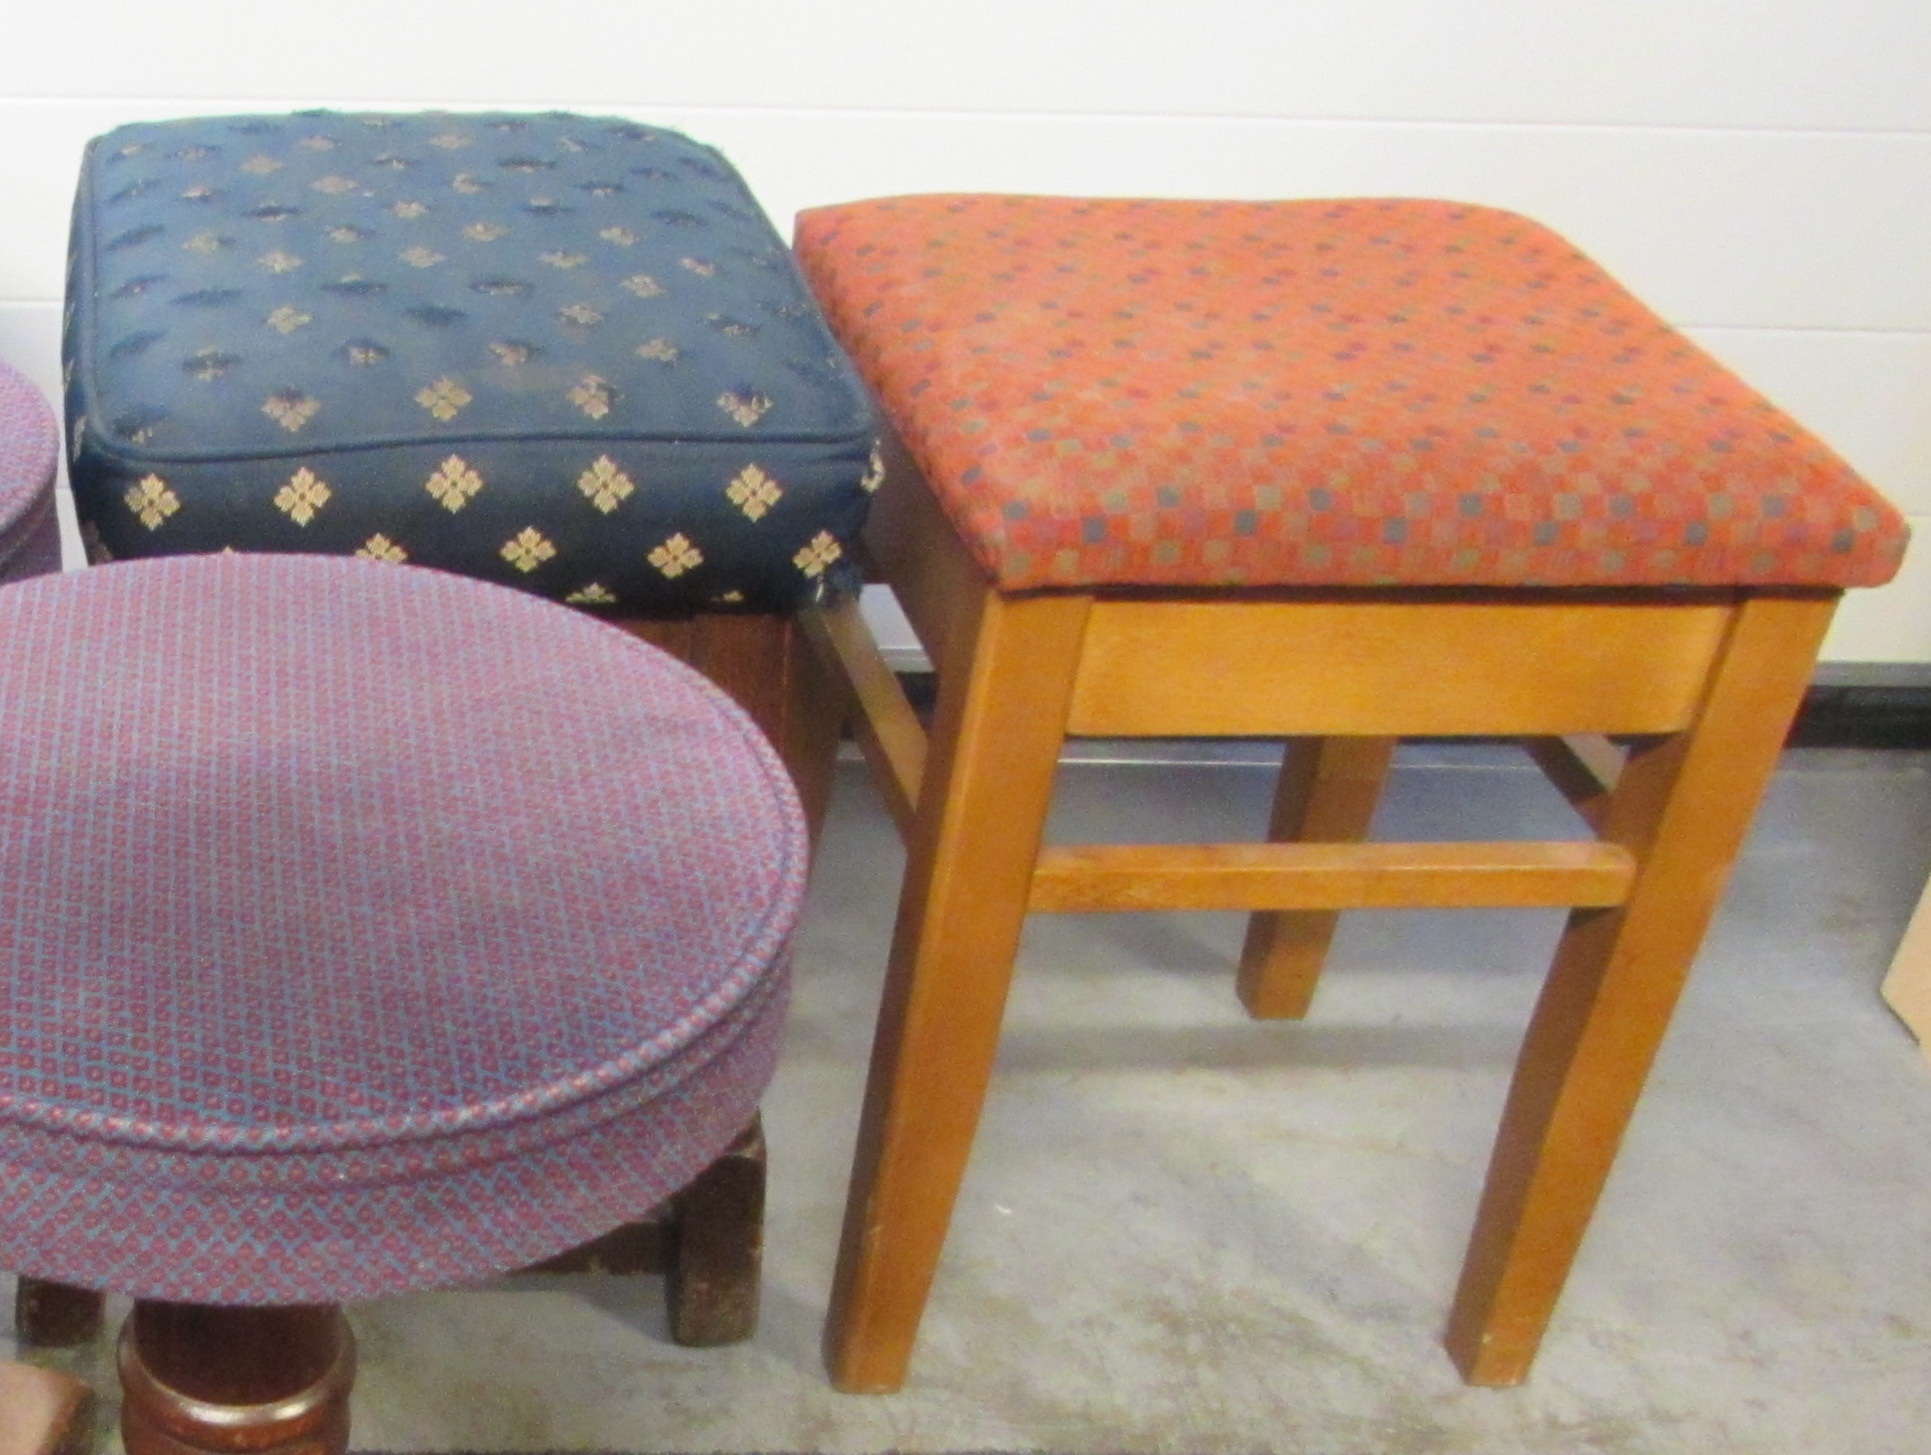 Secondhand Catering Equipment Ser Furniture Ltd Sussex Selection Of Stools Code Ch301 Sussex